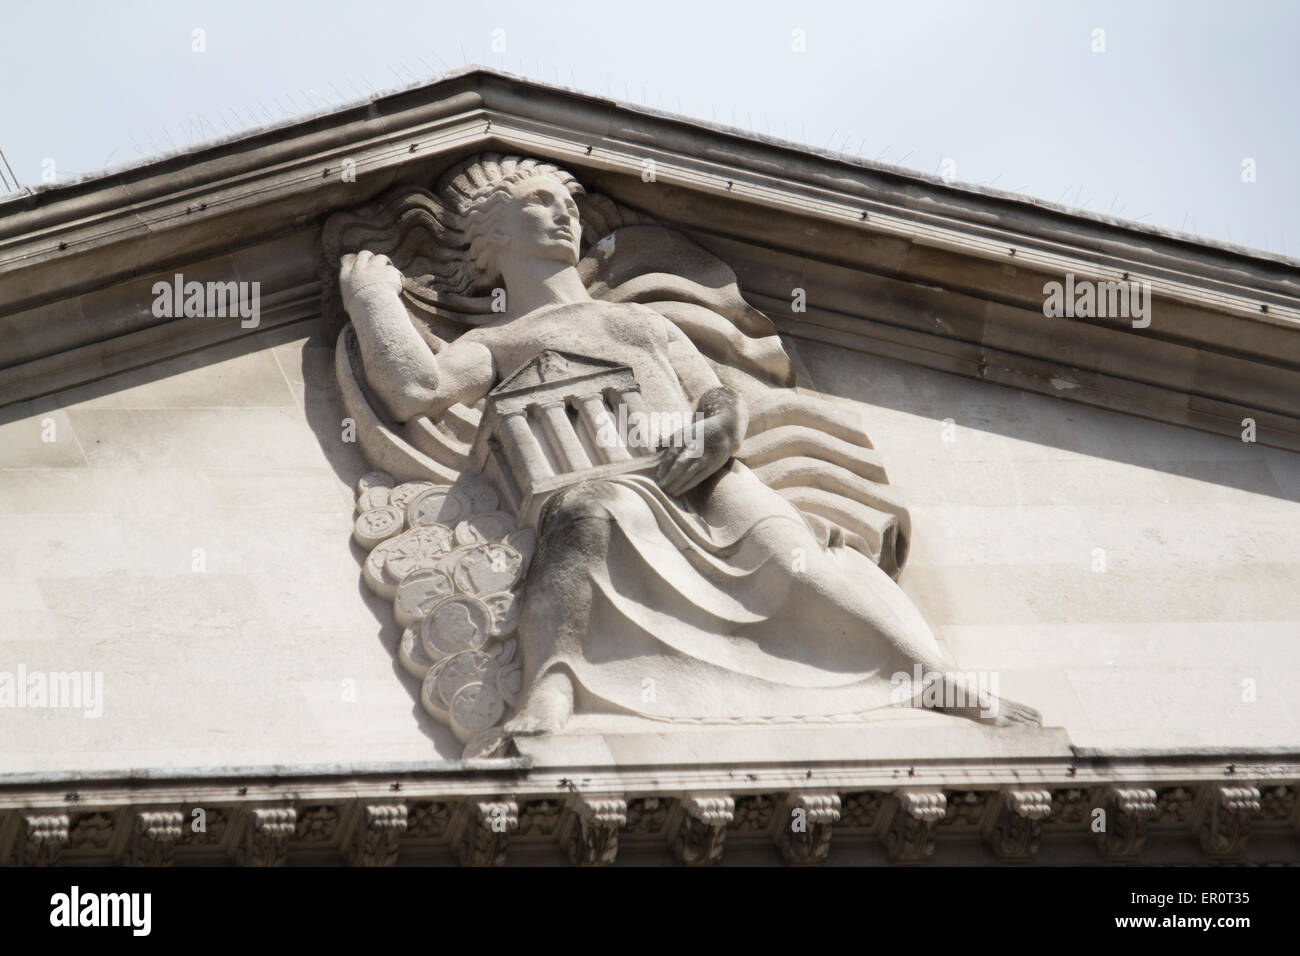 Bank of England architectural feature on roof apex, lady of the bank, Threadneedle street London - Stock Image